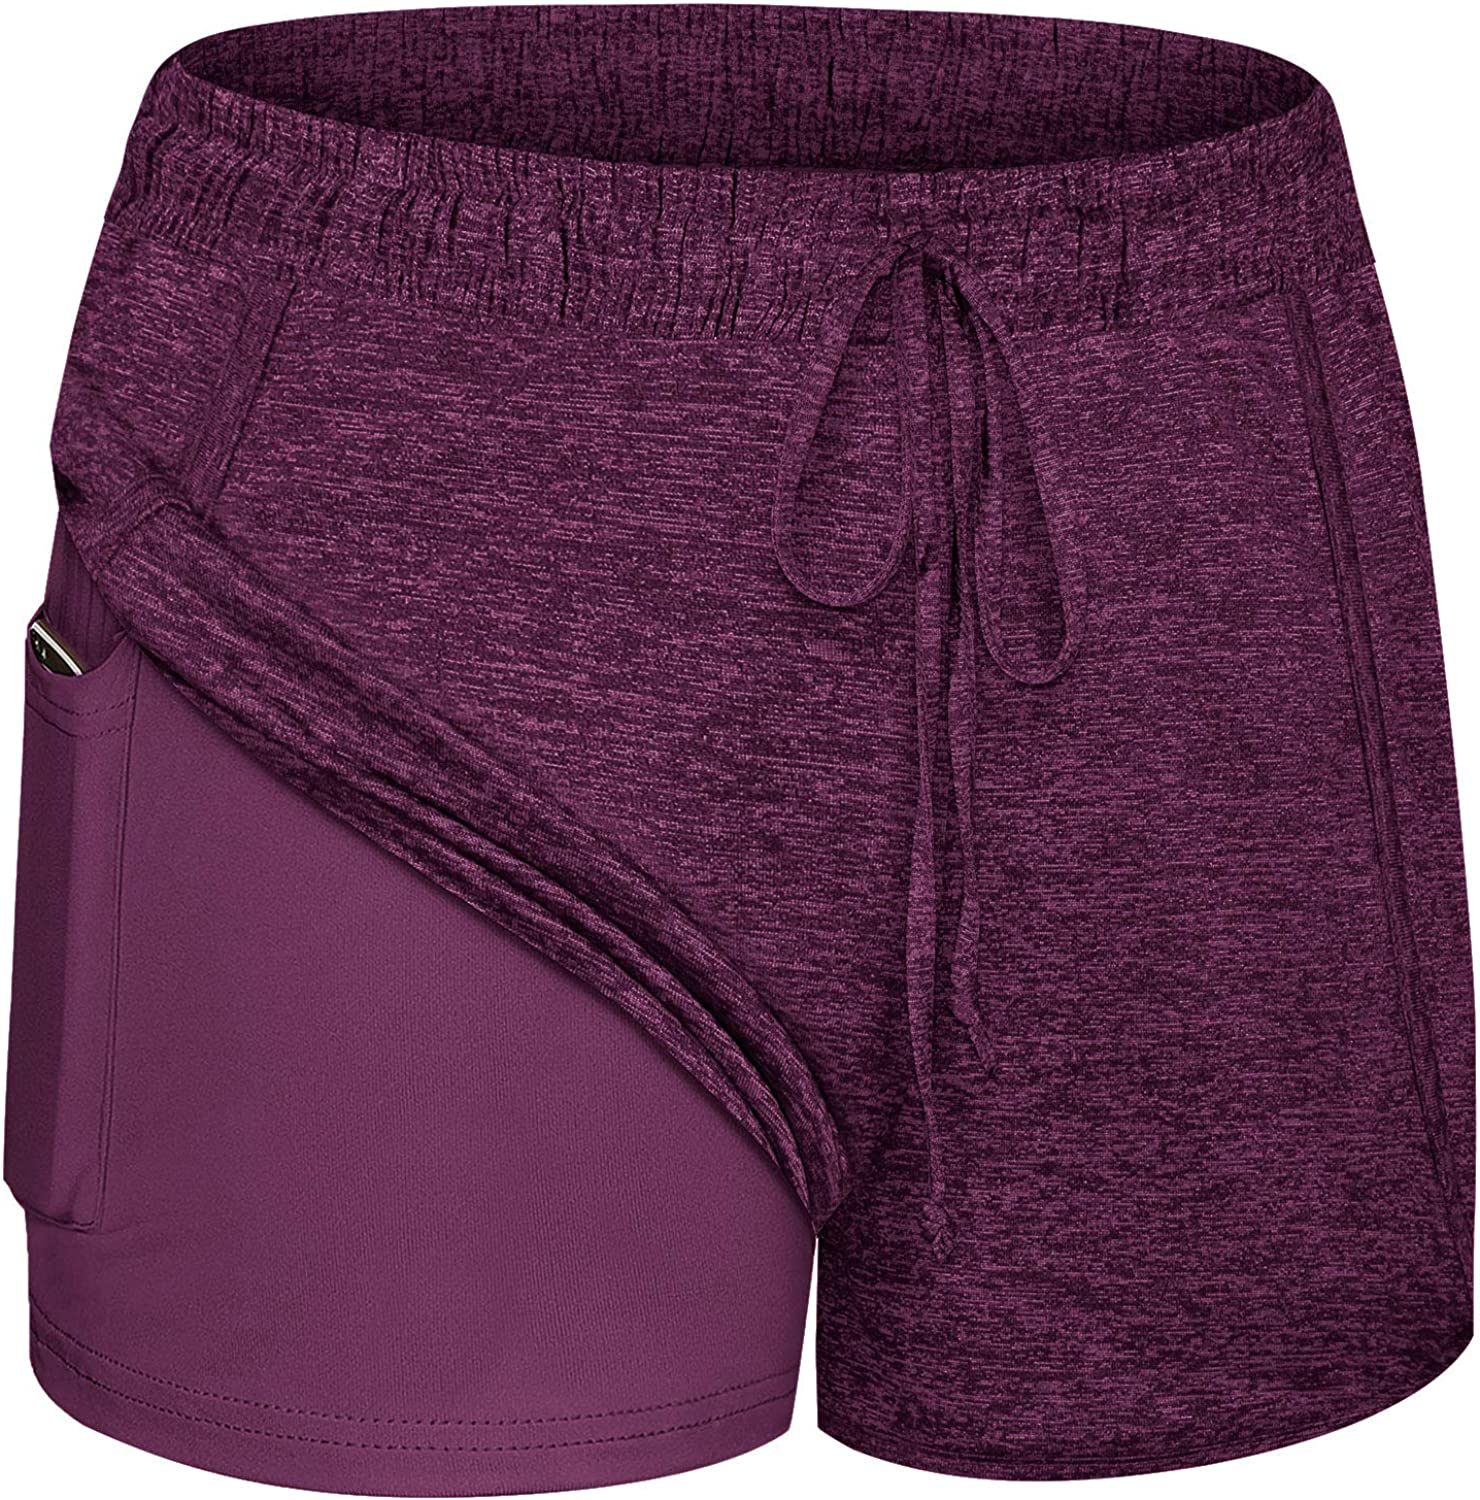 Blevonh Women Yoga Running Shorts 2 in 1 Workout Athletic Shorts with Pockets S-3XL: Clothing